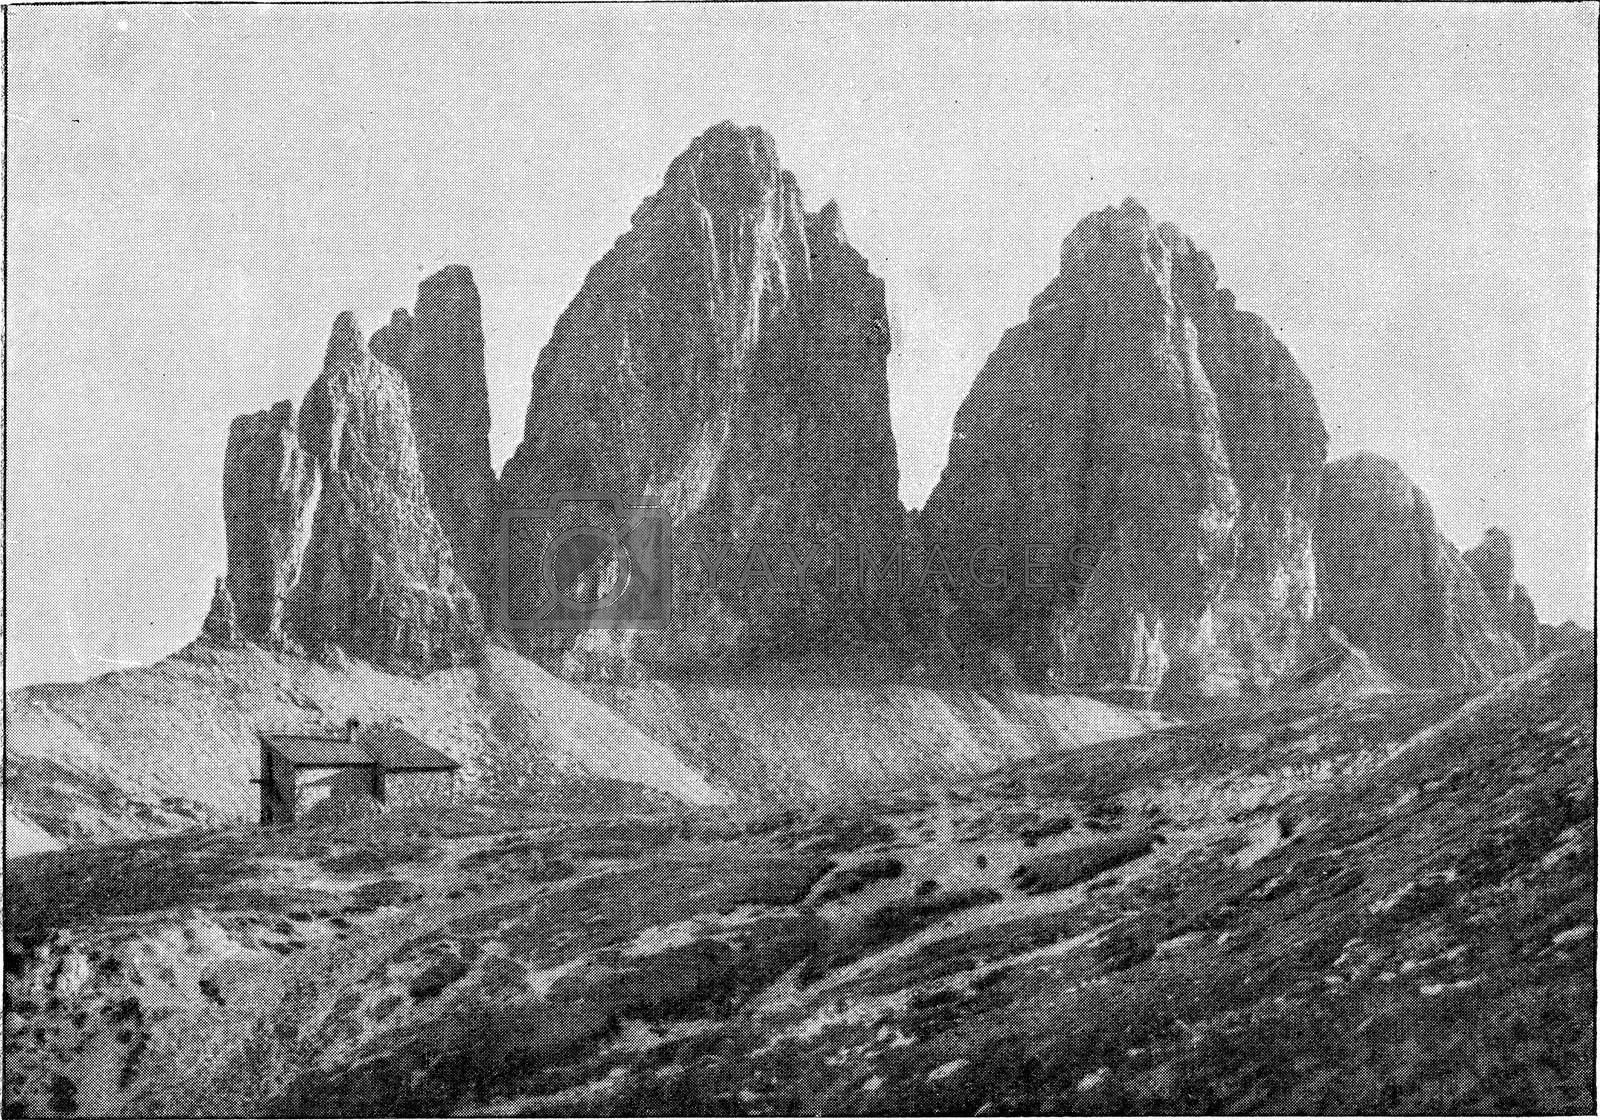 Royalty free image of The Three Peaks of the Dolomites, vintage engraving. by Morphart